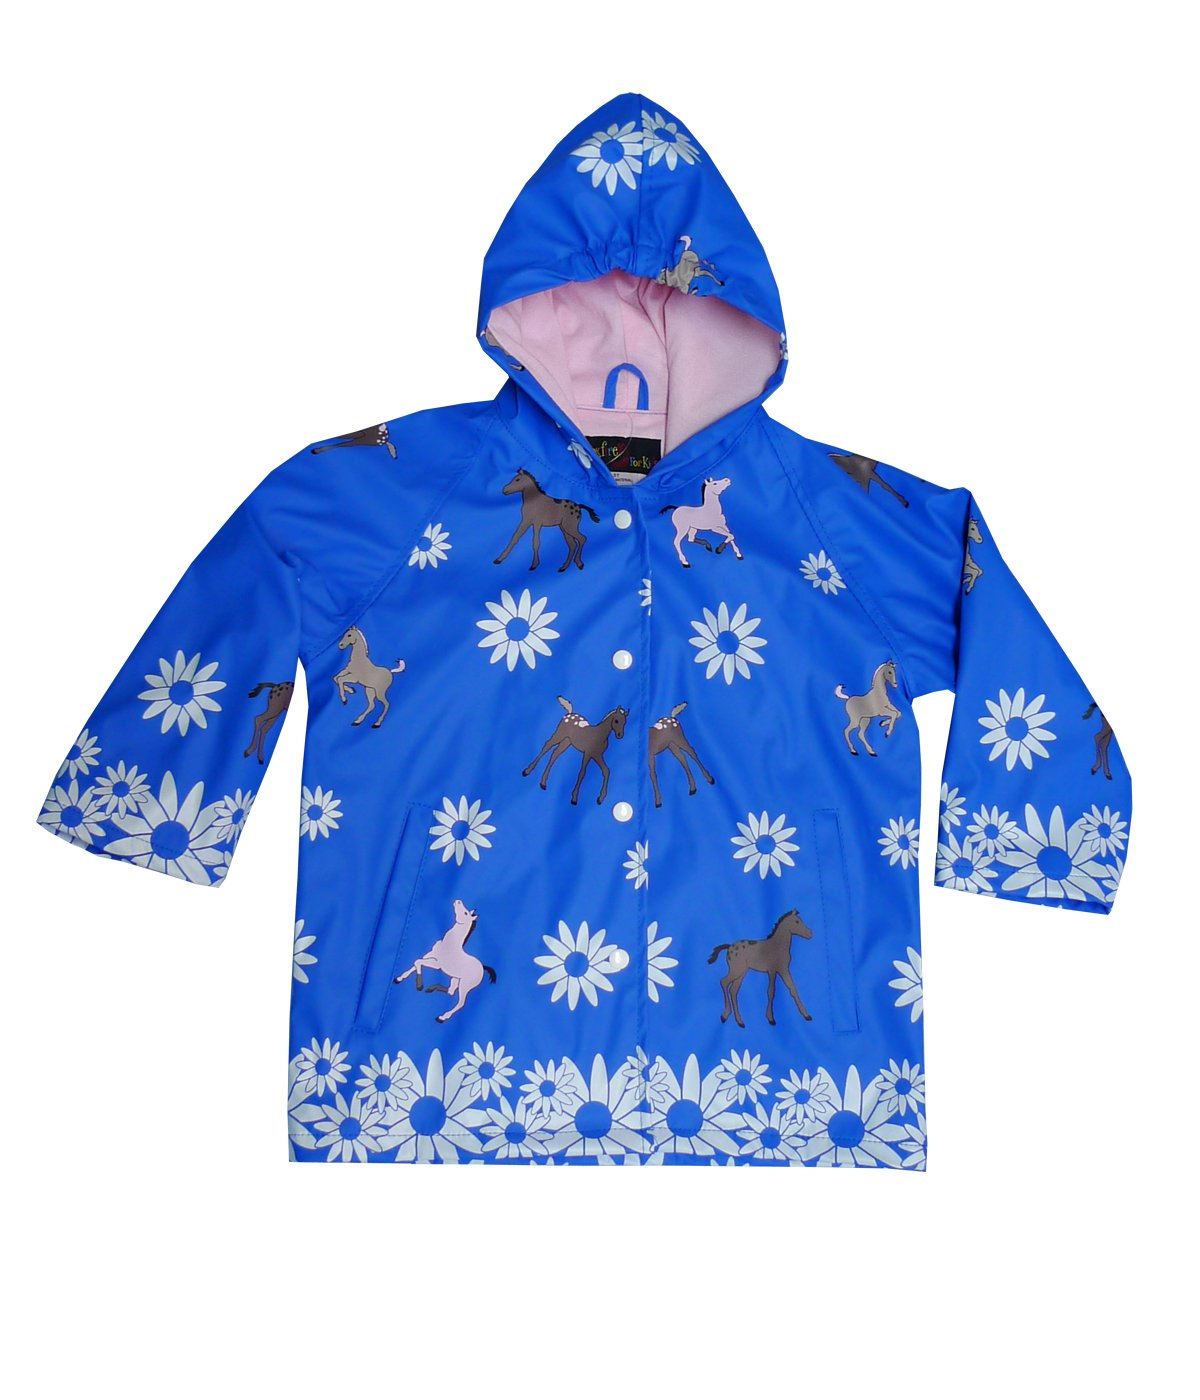 Foxfire For Kids Girls Childrens Toddler Raincoat (Blue Pones, 6) by Foxfire For Kids